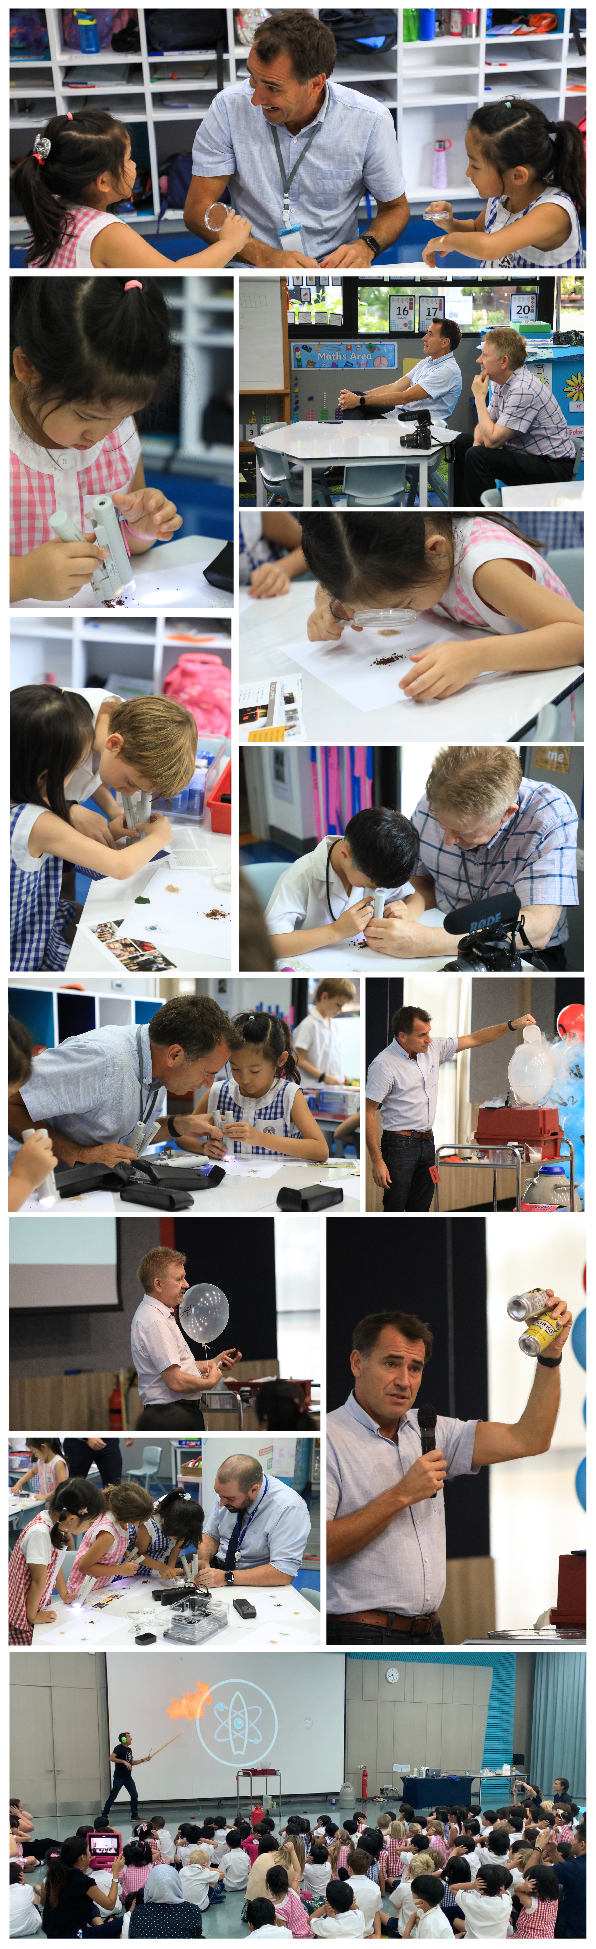 Year 1 visiting scientists